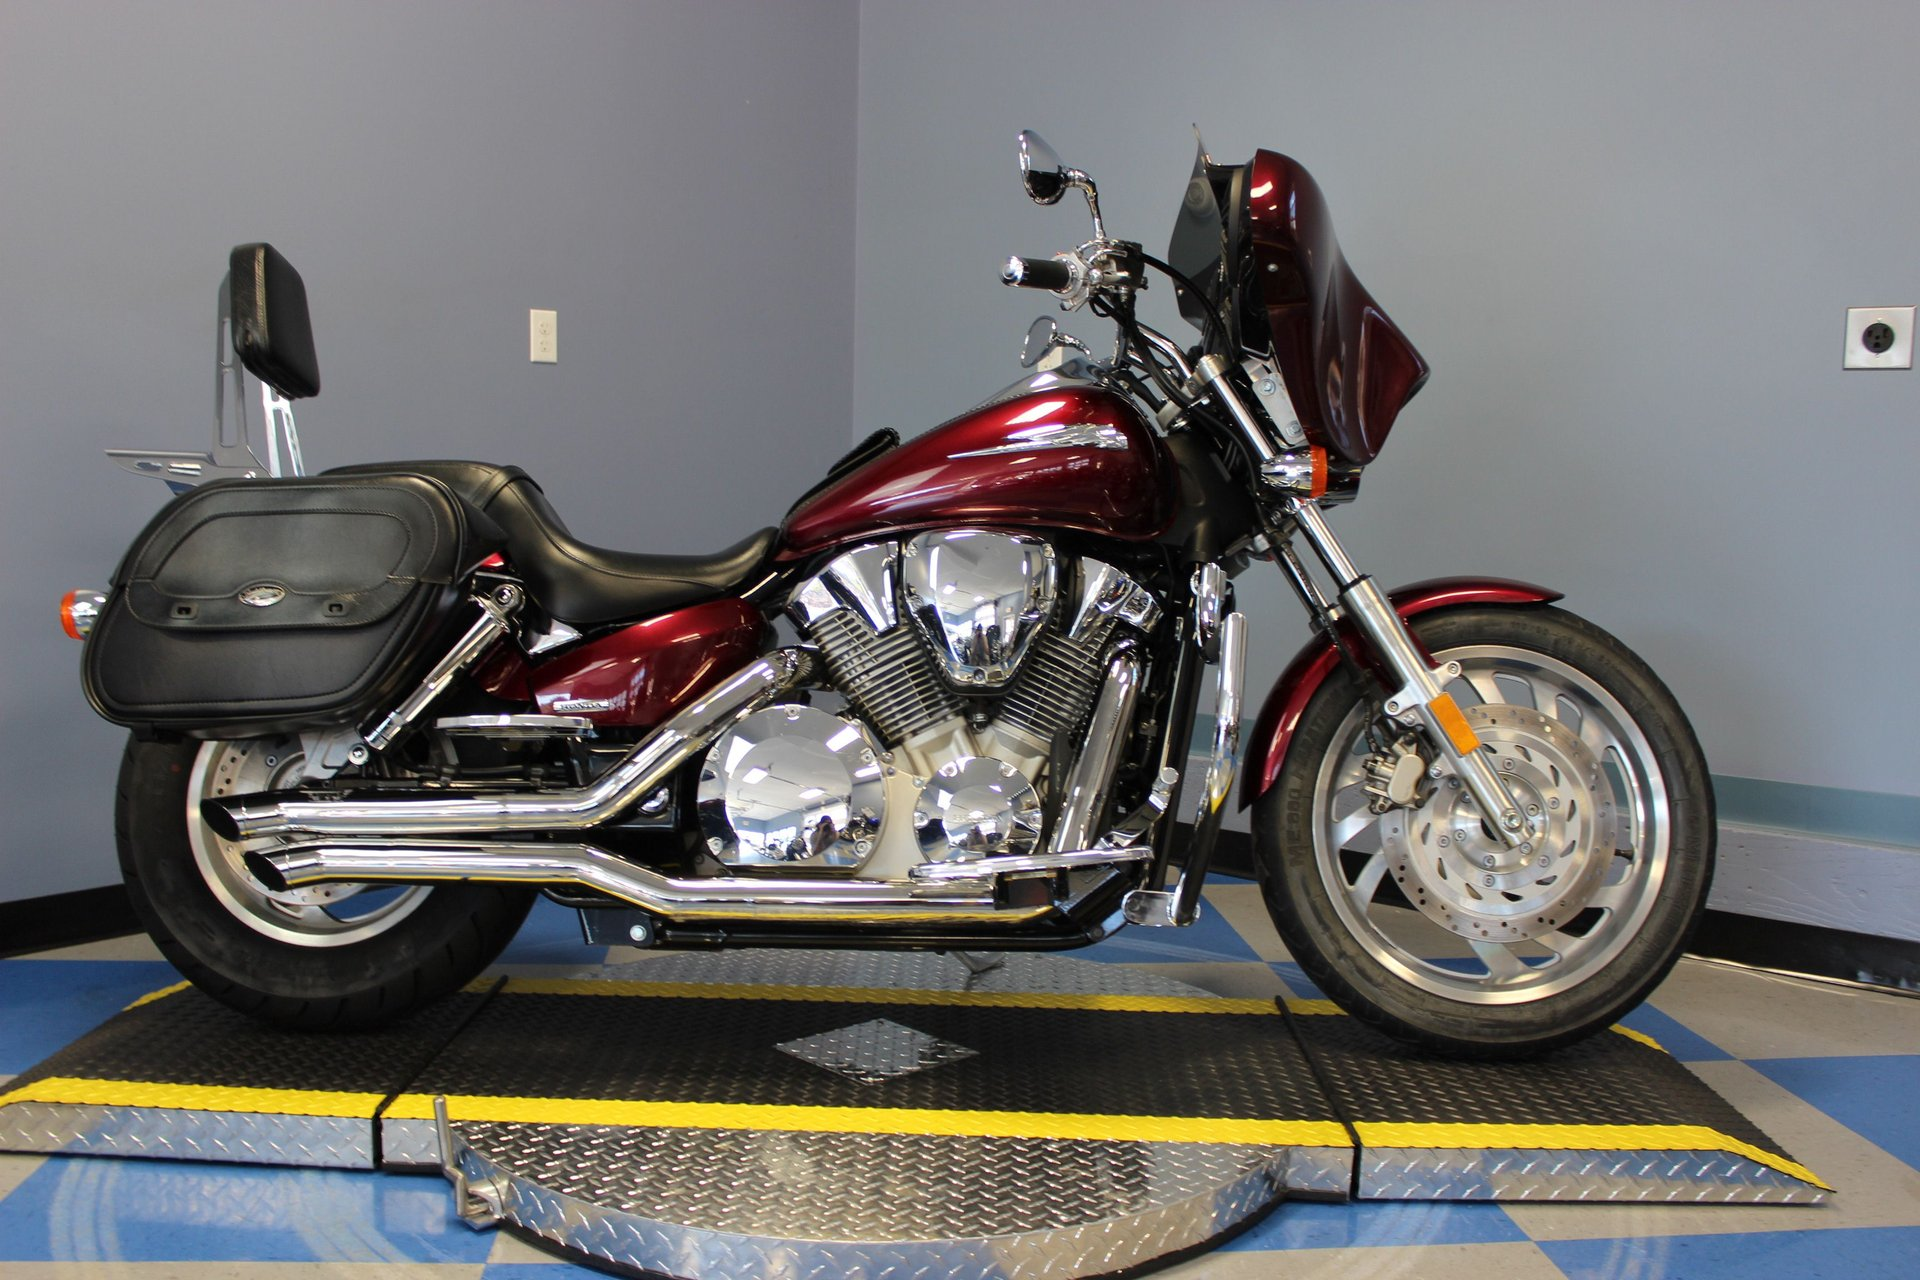 For Sale 2006 Honda VTX 1300C